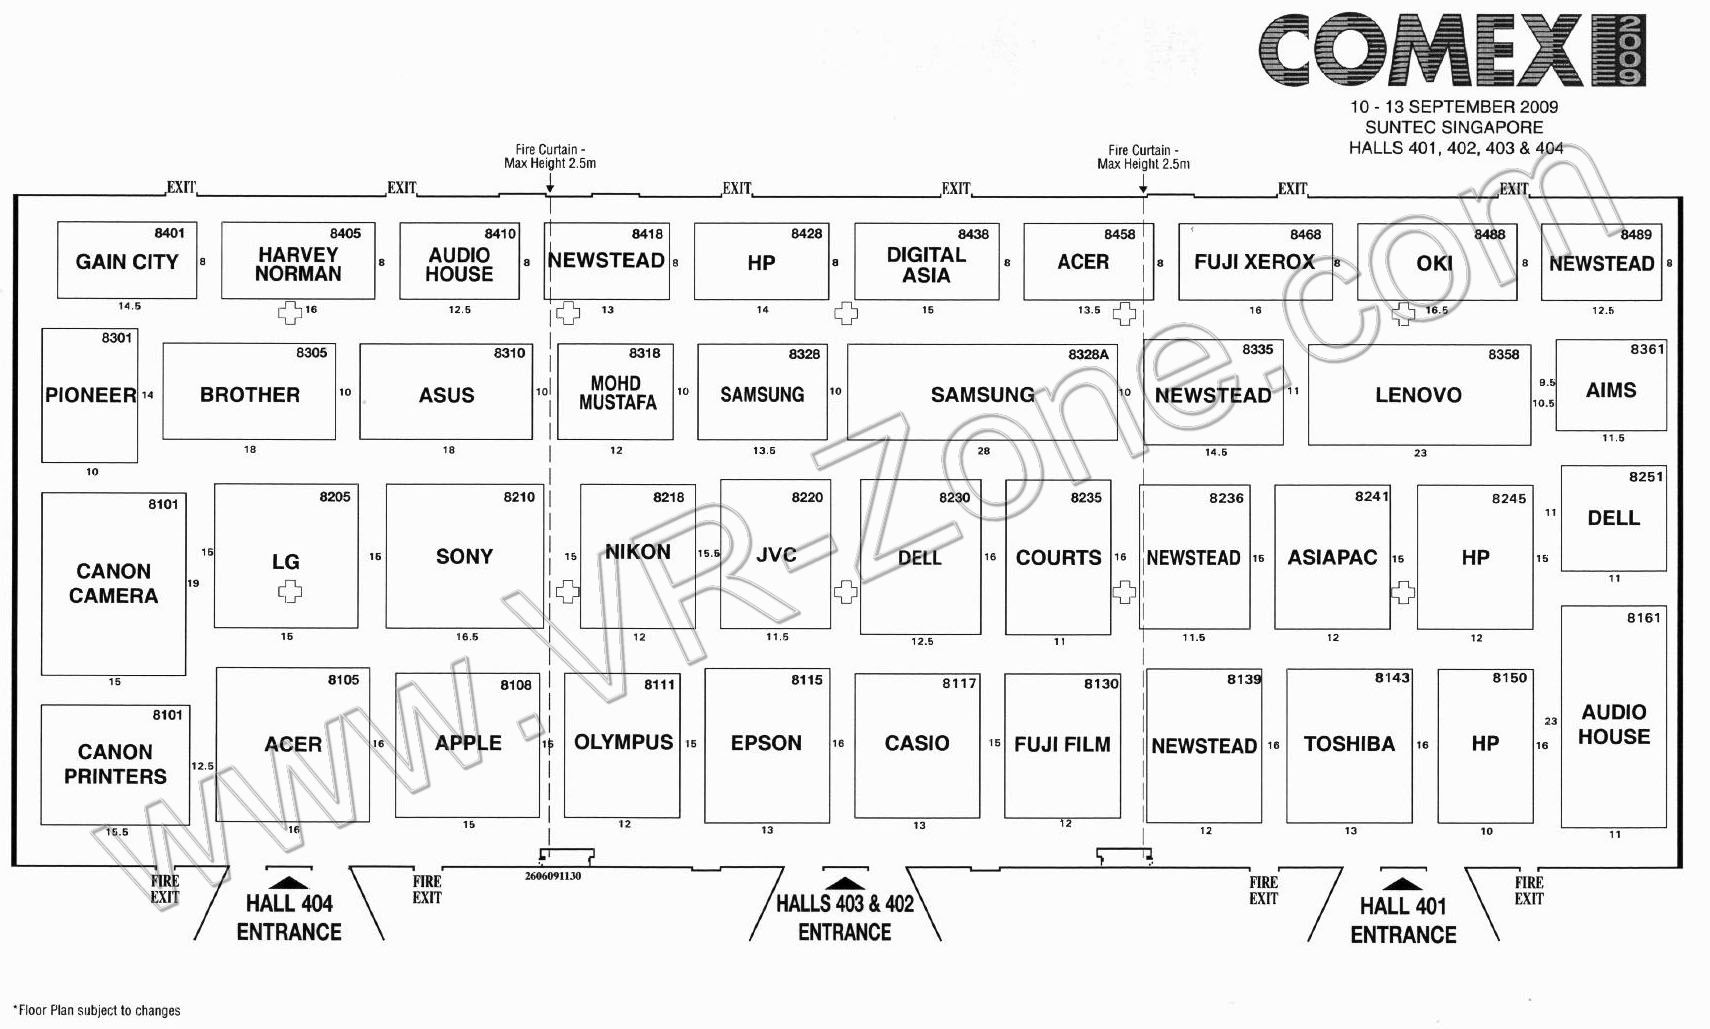 Comex 2009 price list image brochure of Floor Plan Map Level 4